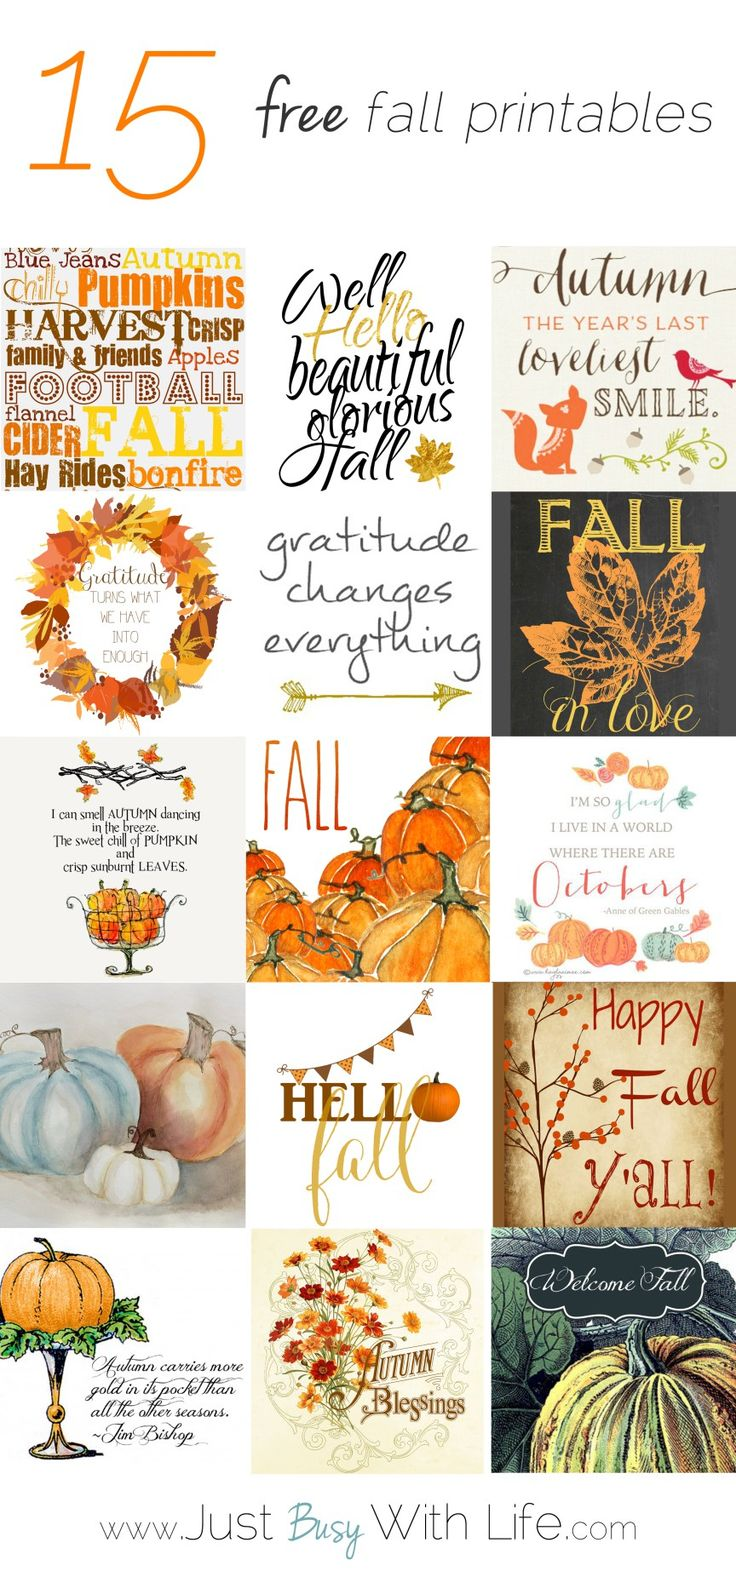 15 Free Fall Printables   Just Busy With Life